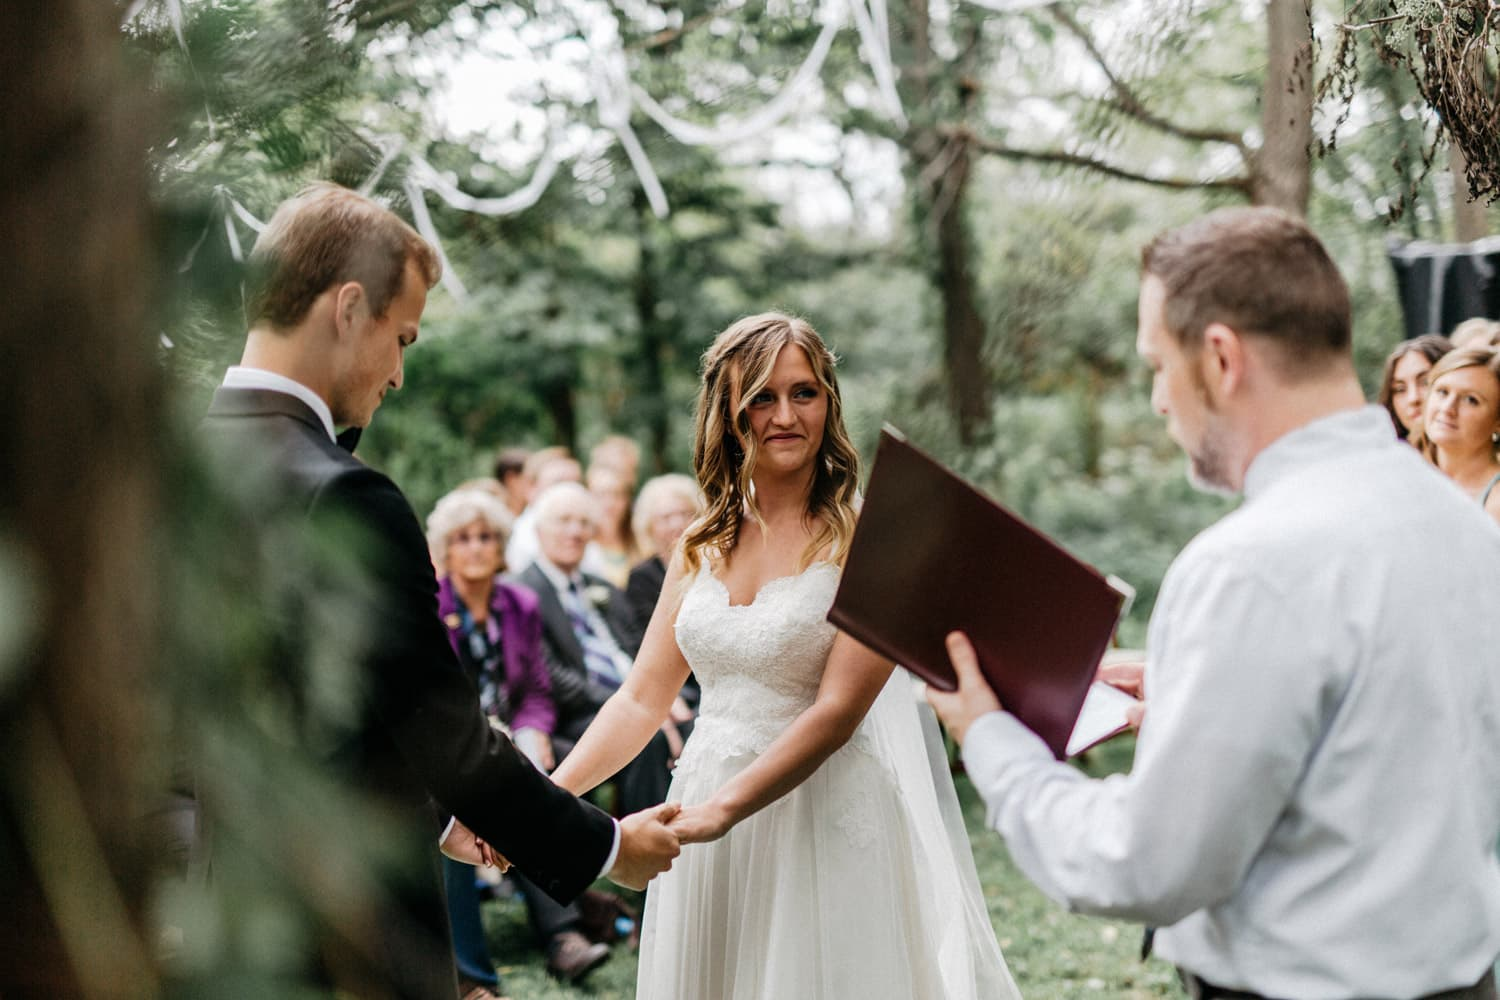 outdoor ceremony at brides home